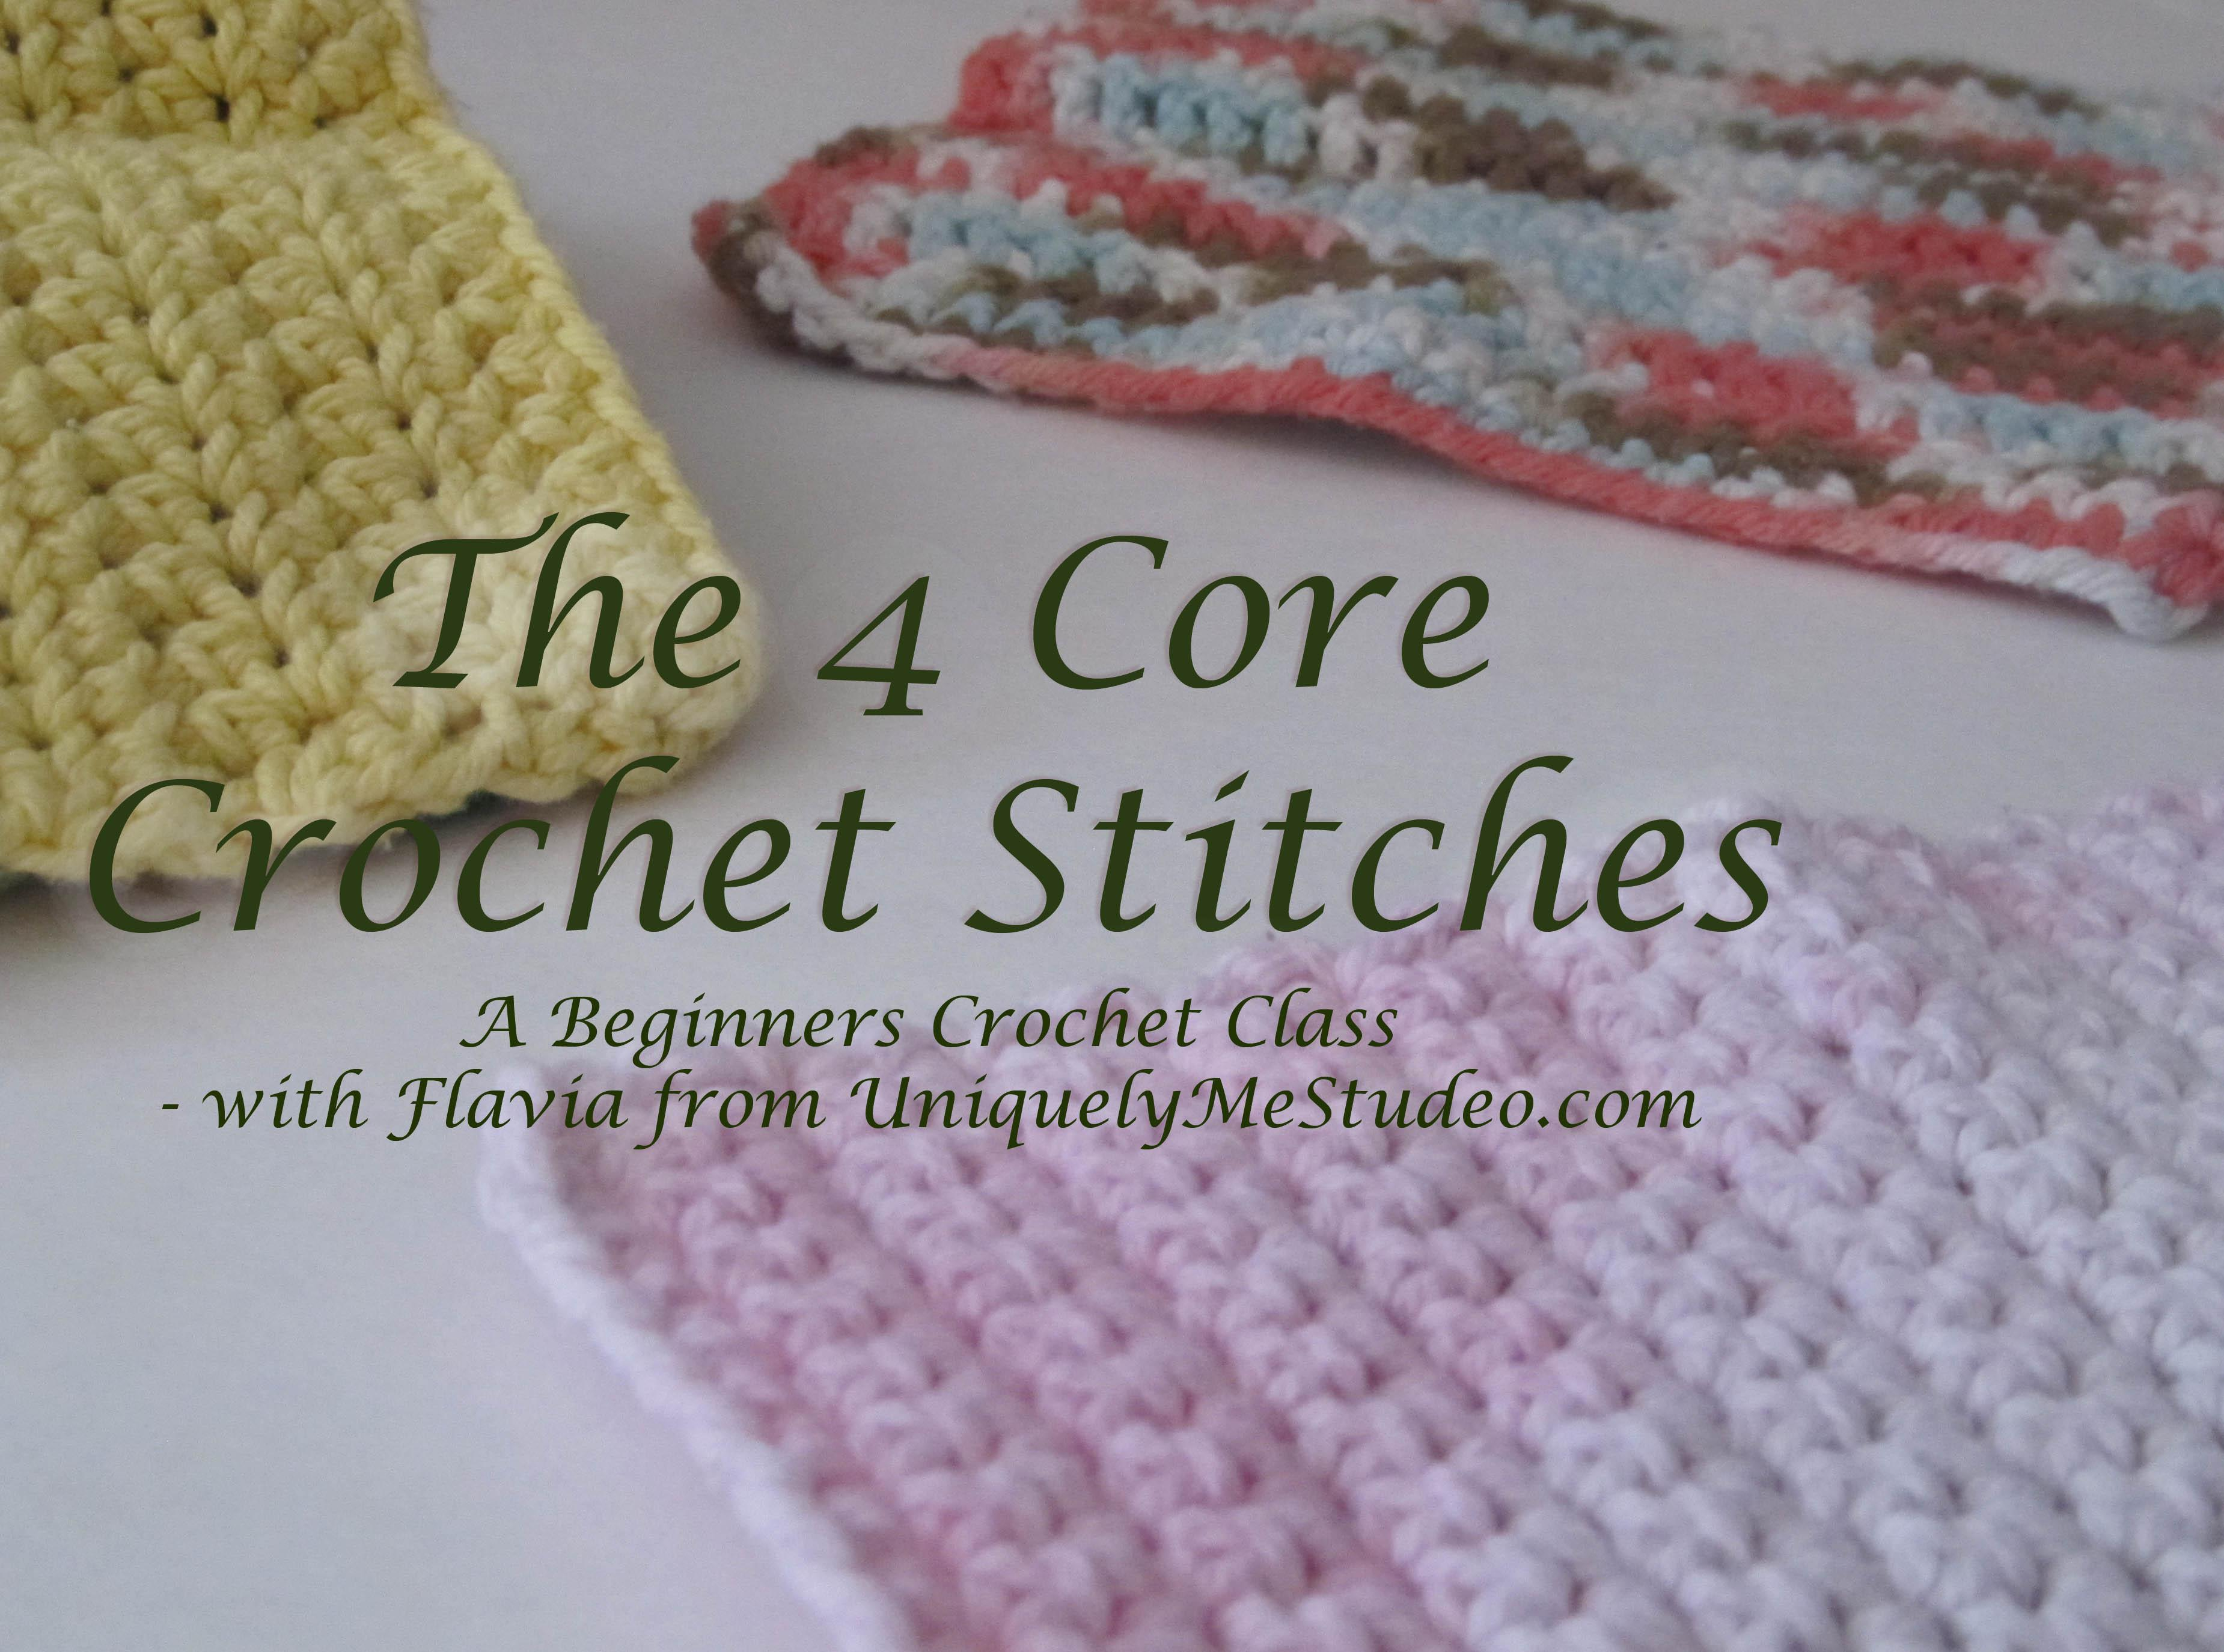 The 4 Core Crochet Stitches Beginners Crochet Class Flavia Wolfe